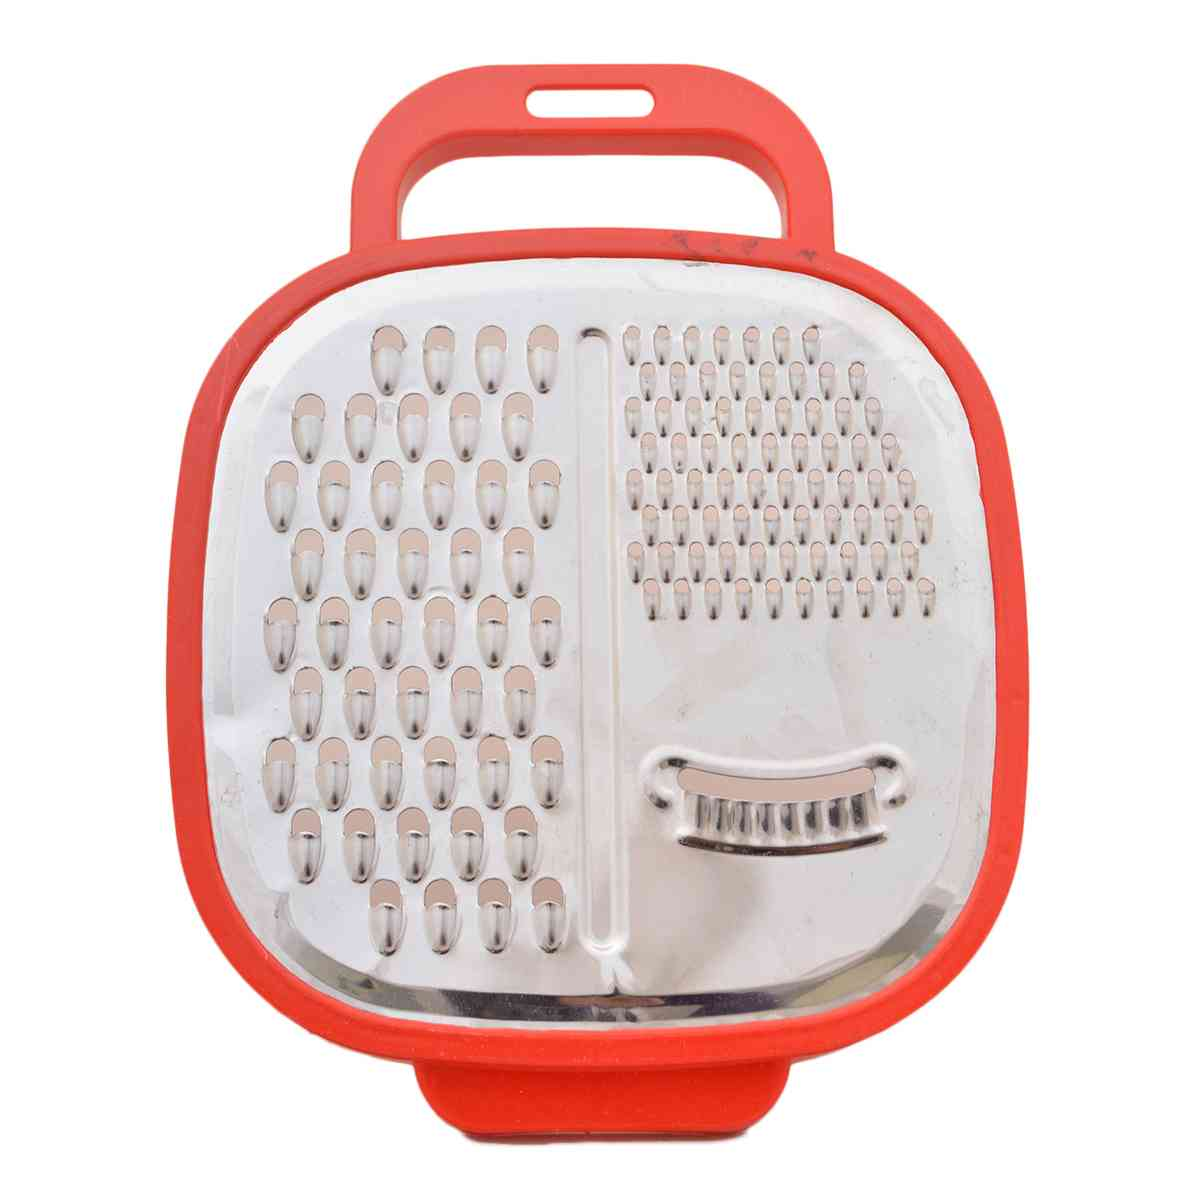 Multifunction Food Slicer & Peeler (Compartment + Peeler/Slicer)